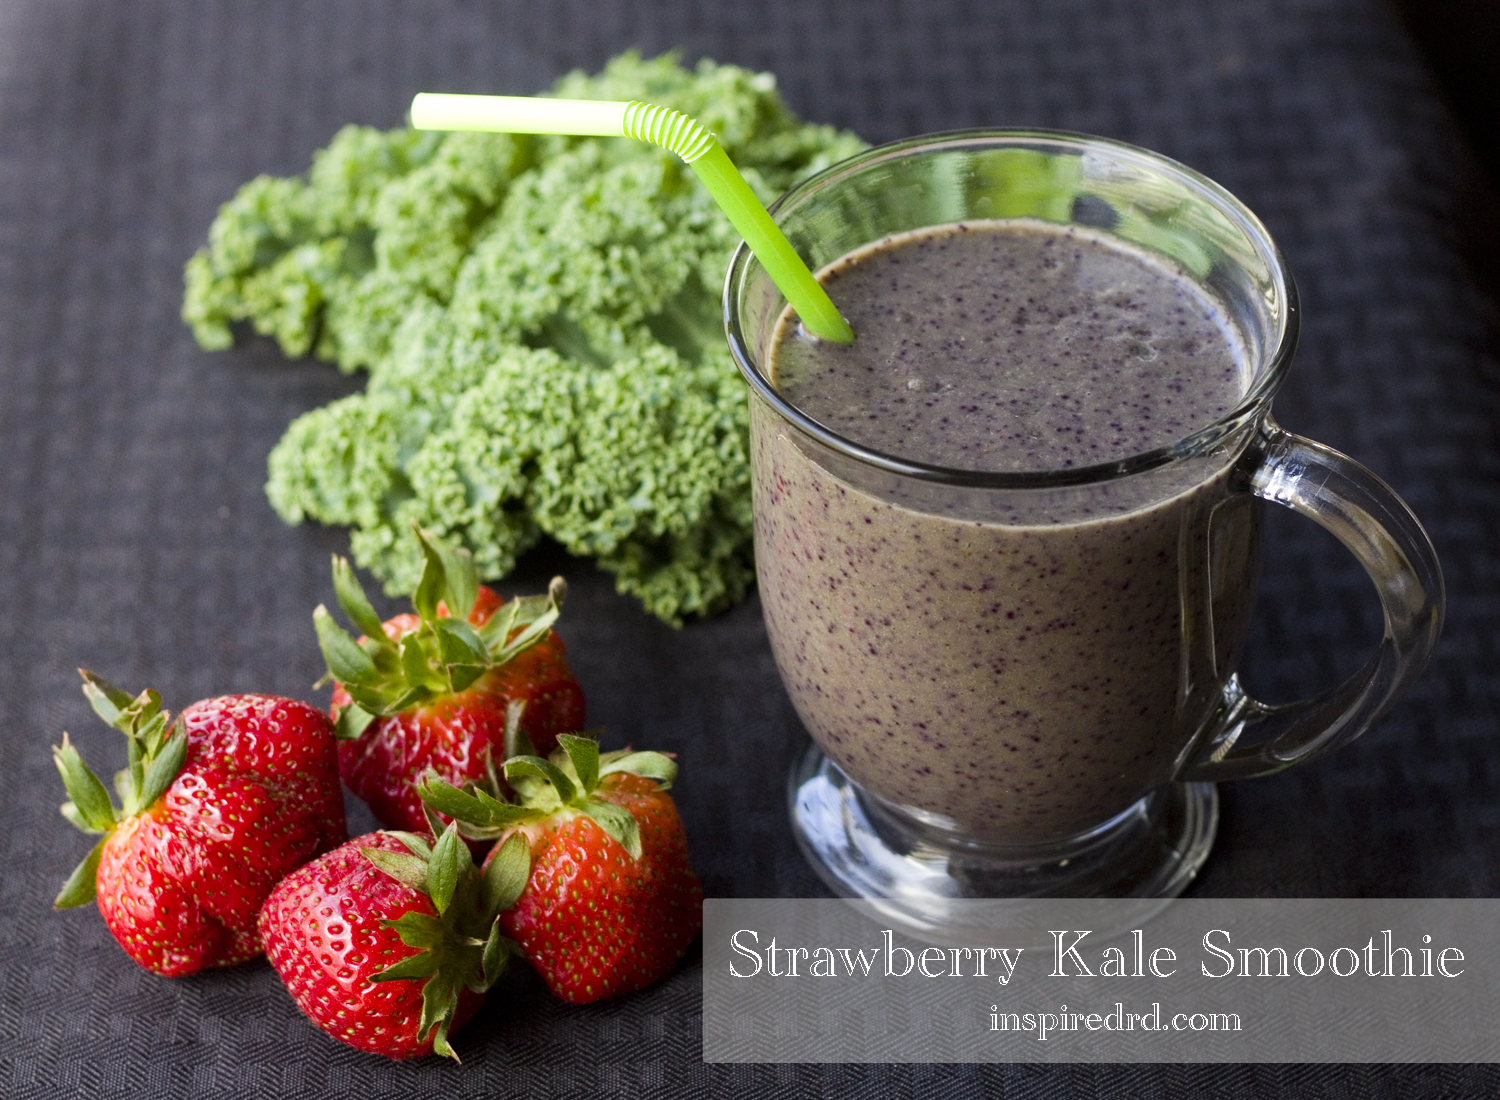 Strawberry Kale Smoothie - Quick and Easy breakfast from InspiredRD.com